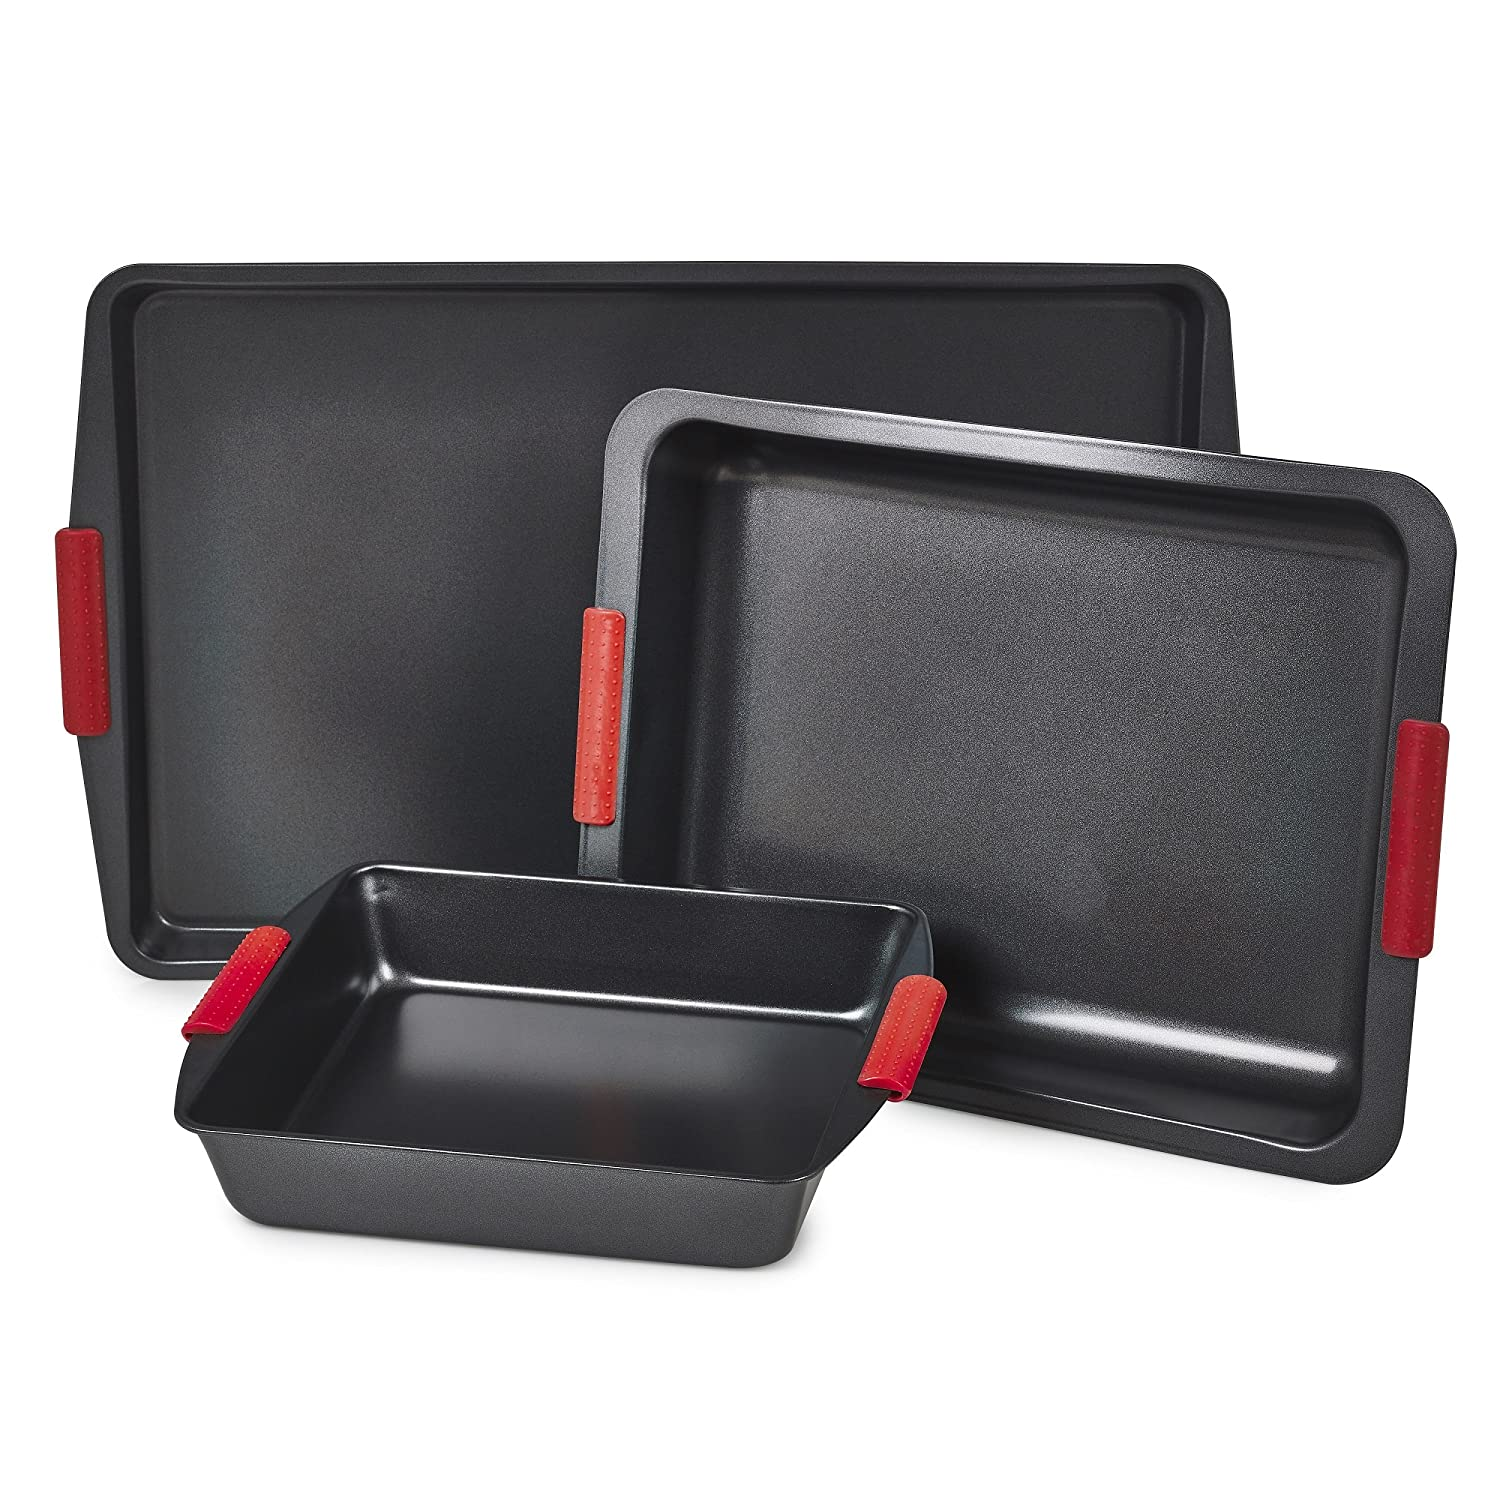 Homiu Set Of 3 Non Stick Baking Roasting Carbon Steel Oven Trays – Silicone Non Slip Grip Handles